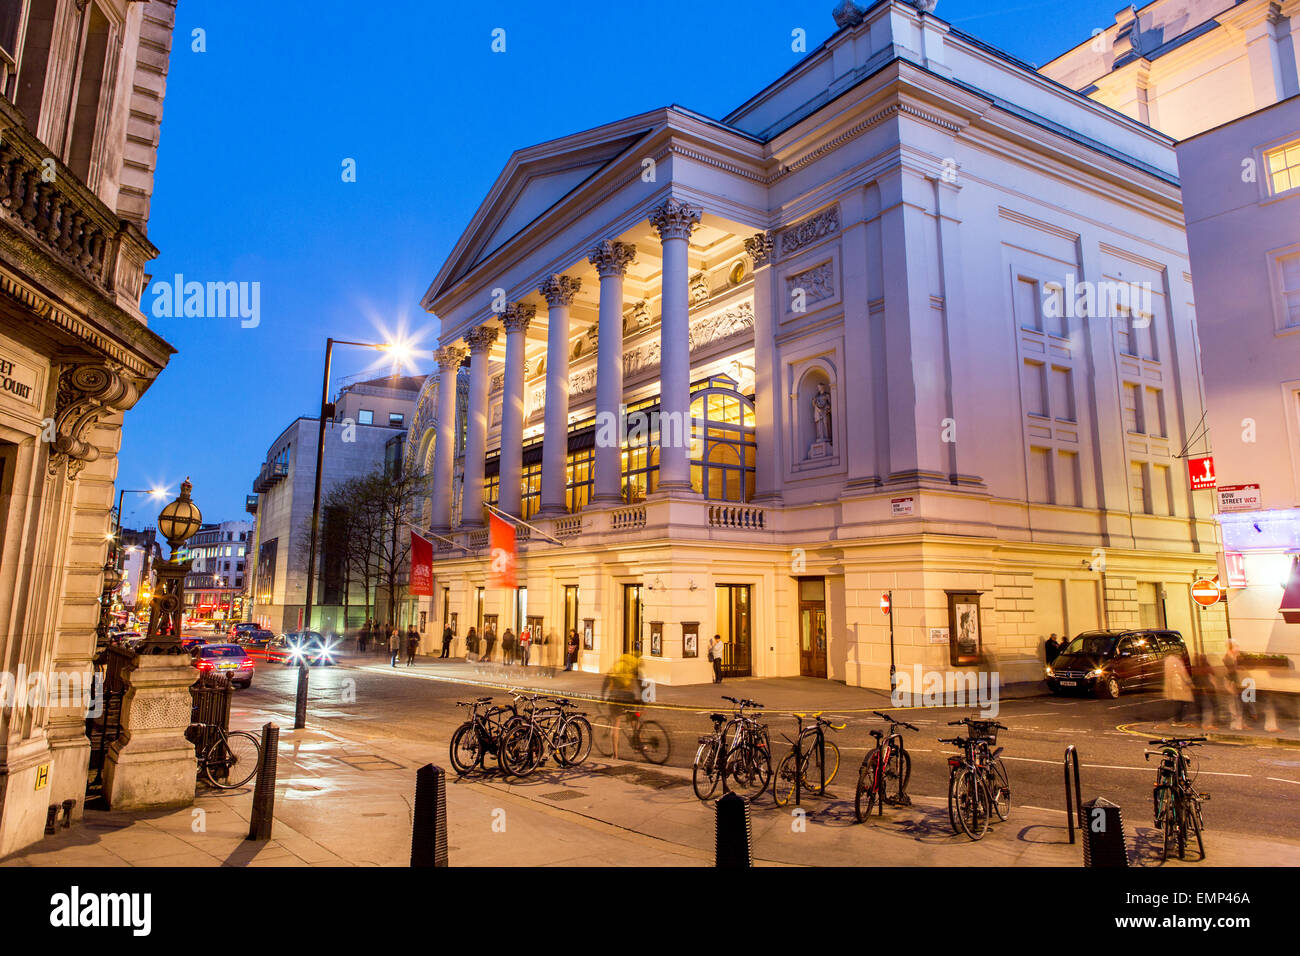 Bow Street With The Royal Opera House at Night London UK - Stock Image